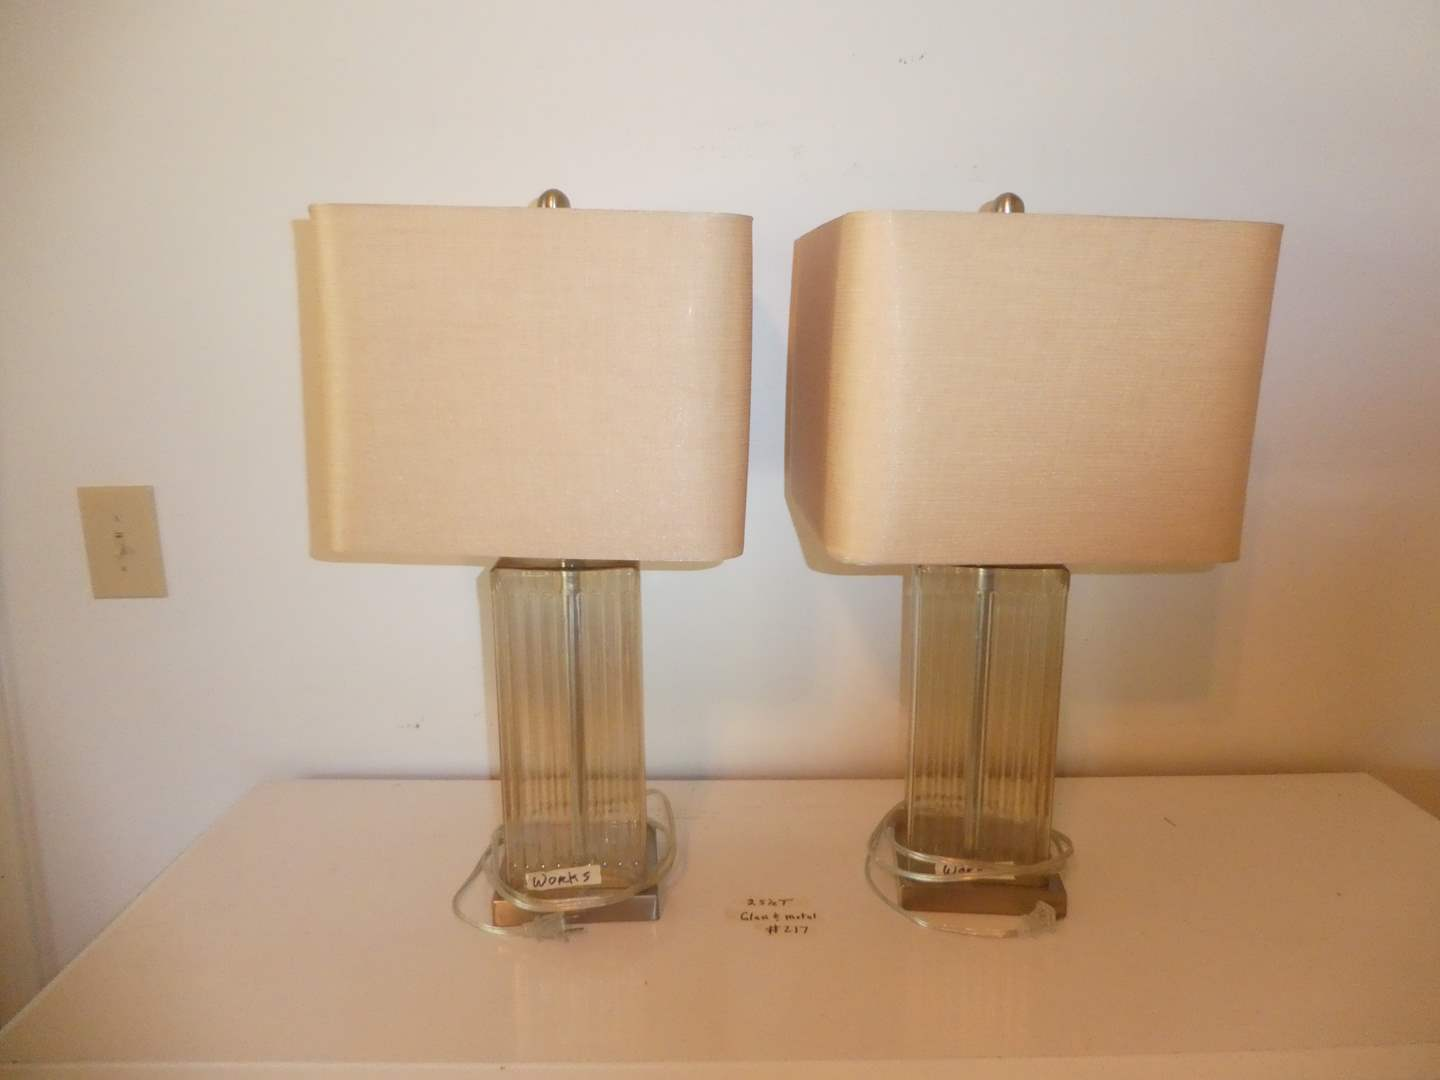 Lot # 217 - Pair of Glass and Metal Table Lamps (Shades Are a Champagne Color)